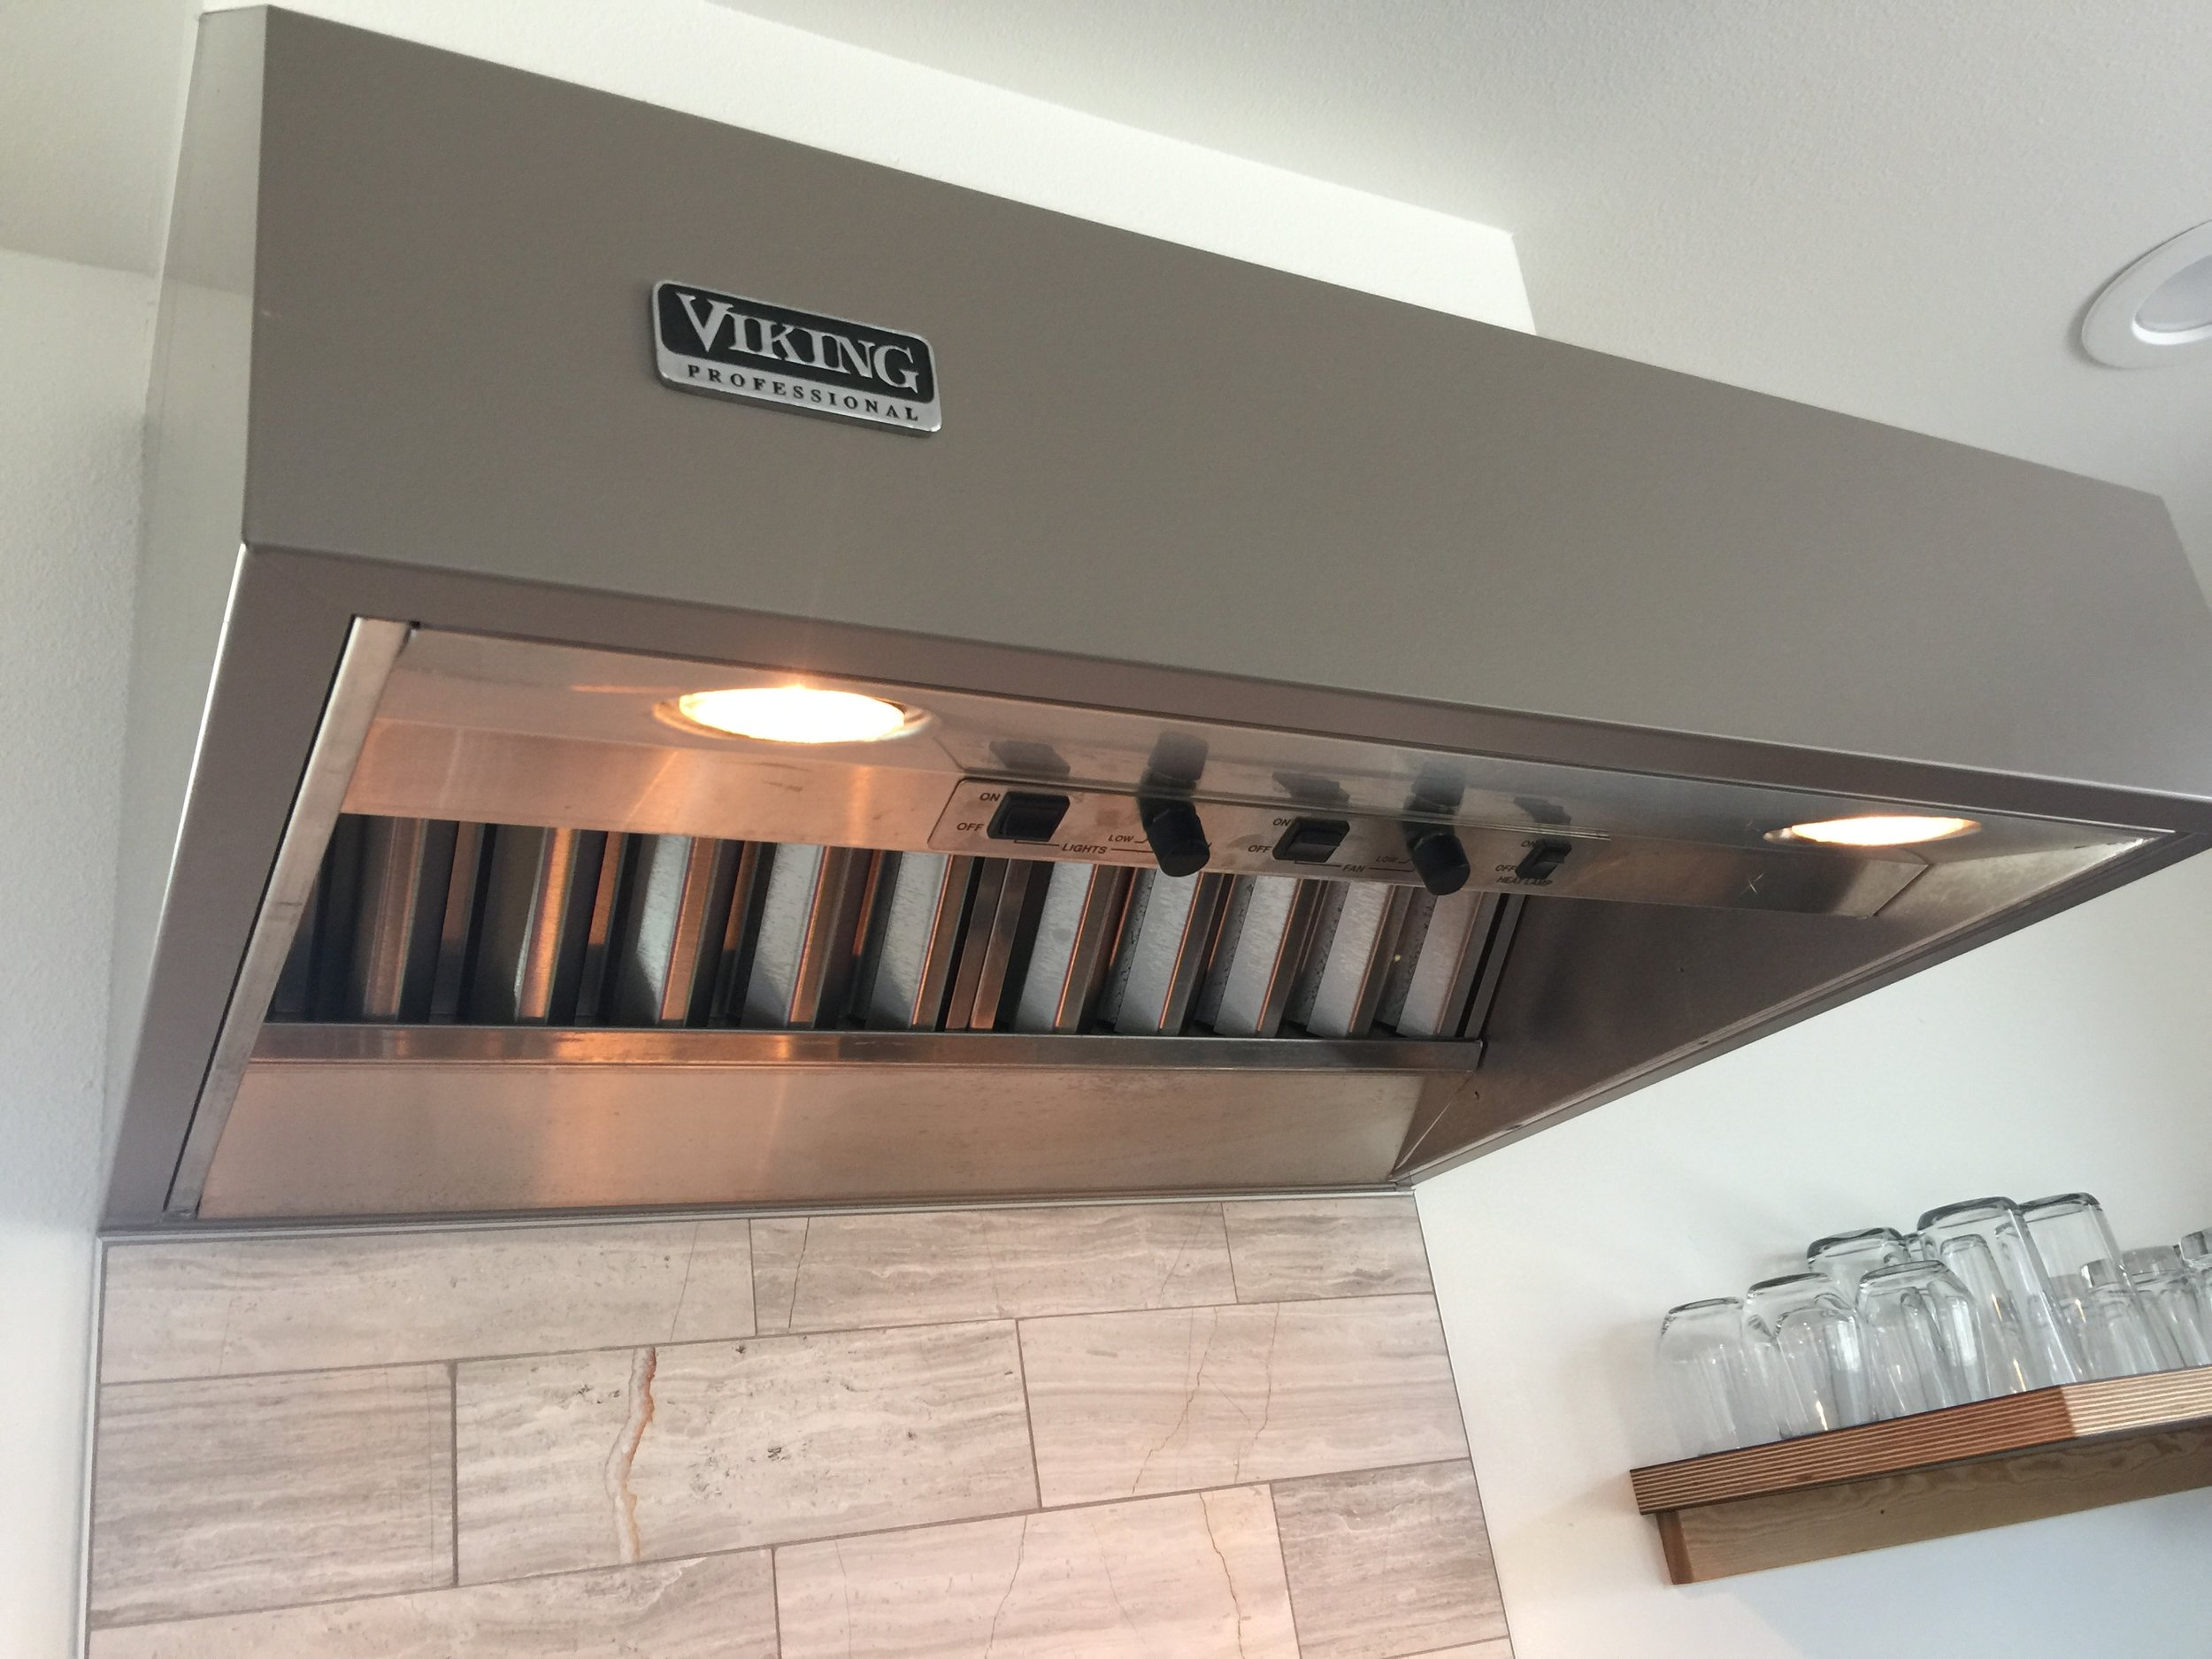 On/off and speed controls are integrated into the Viking range hood.